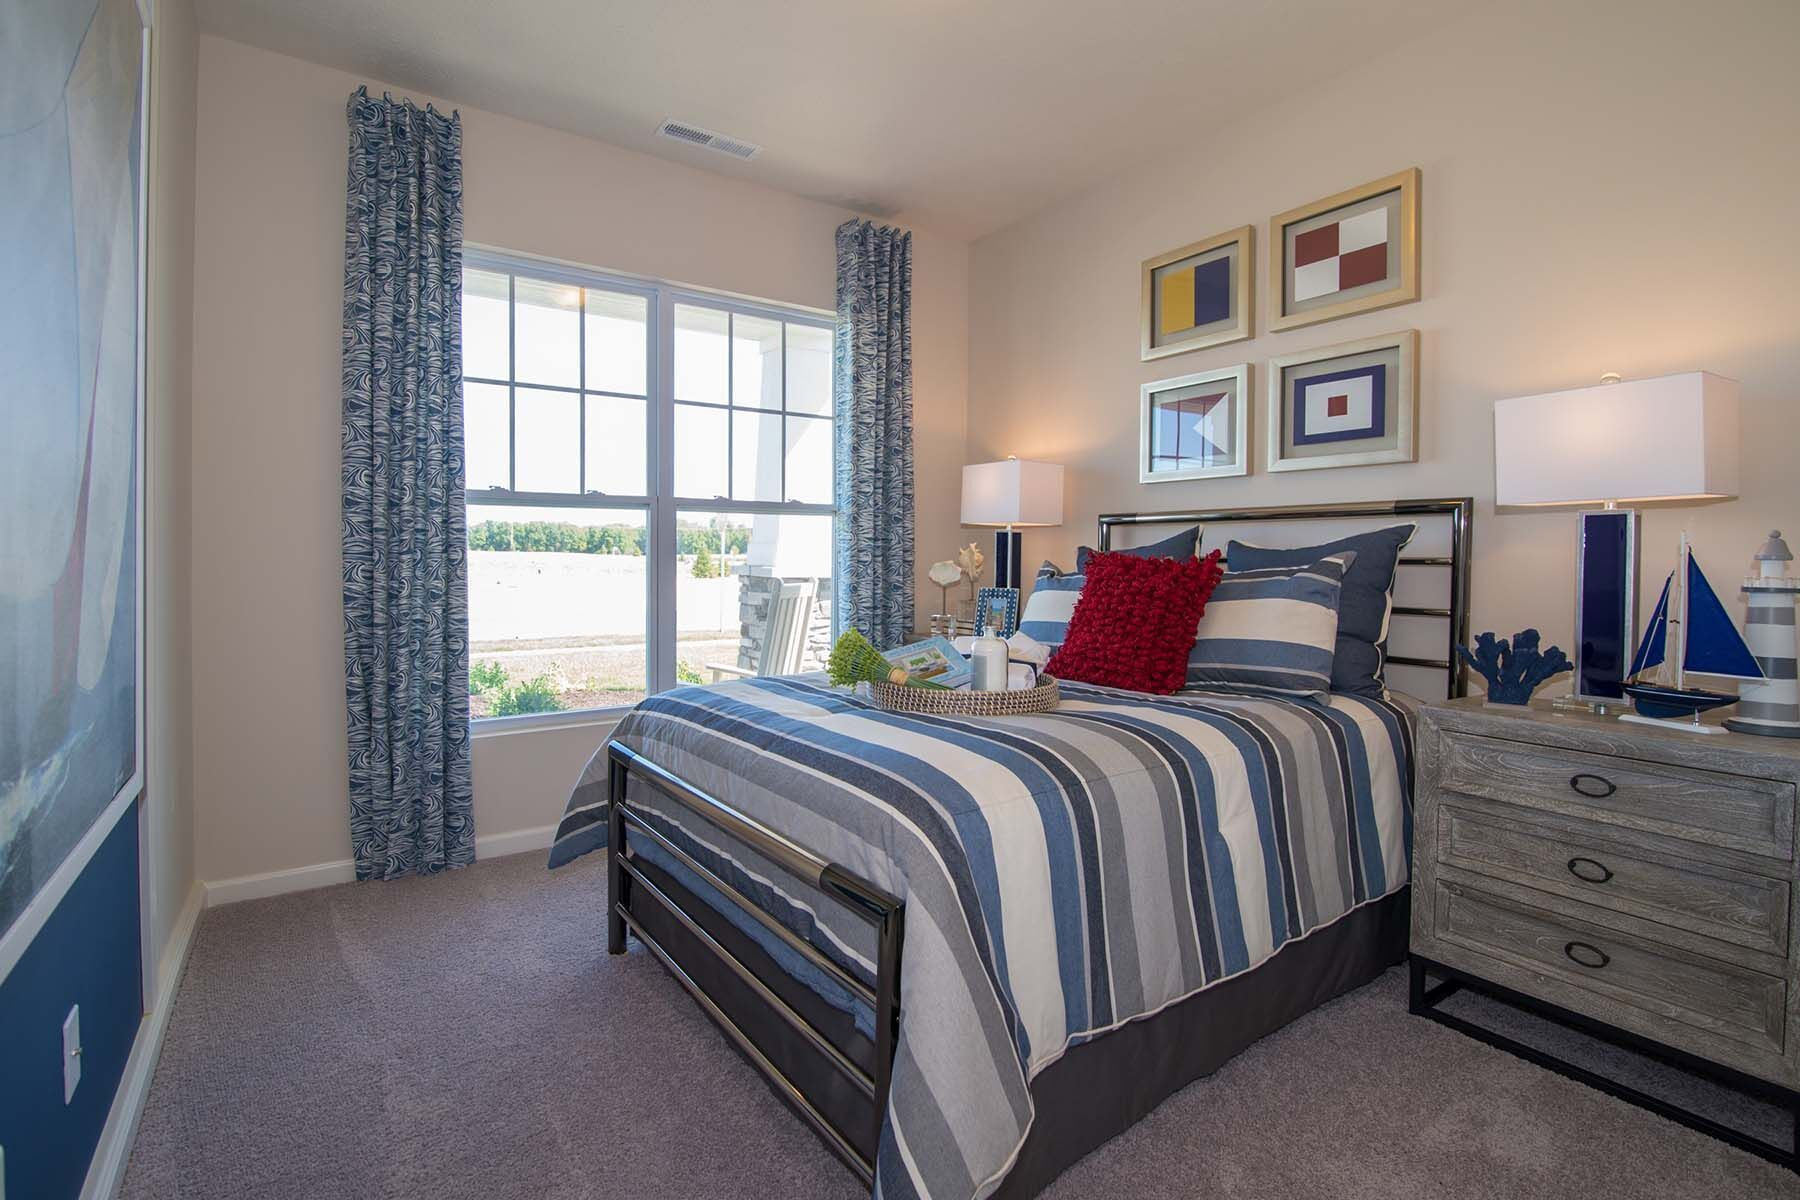 Bedroom featured in the Bella Vista By M/I Homes in Indianapolis, IN